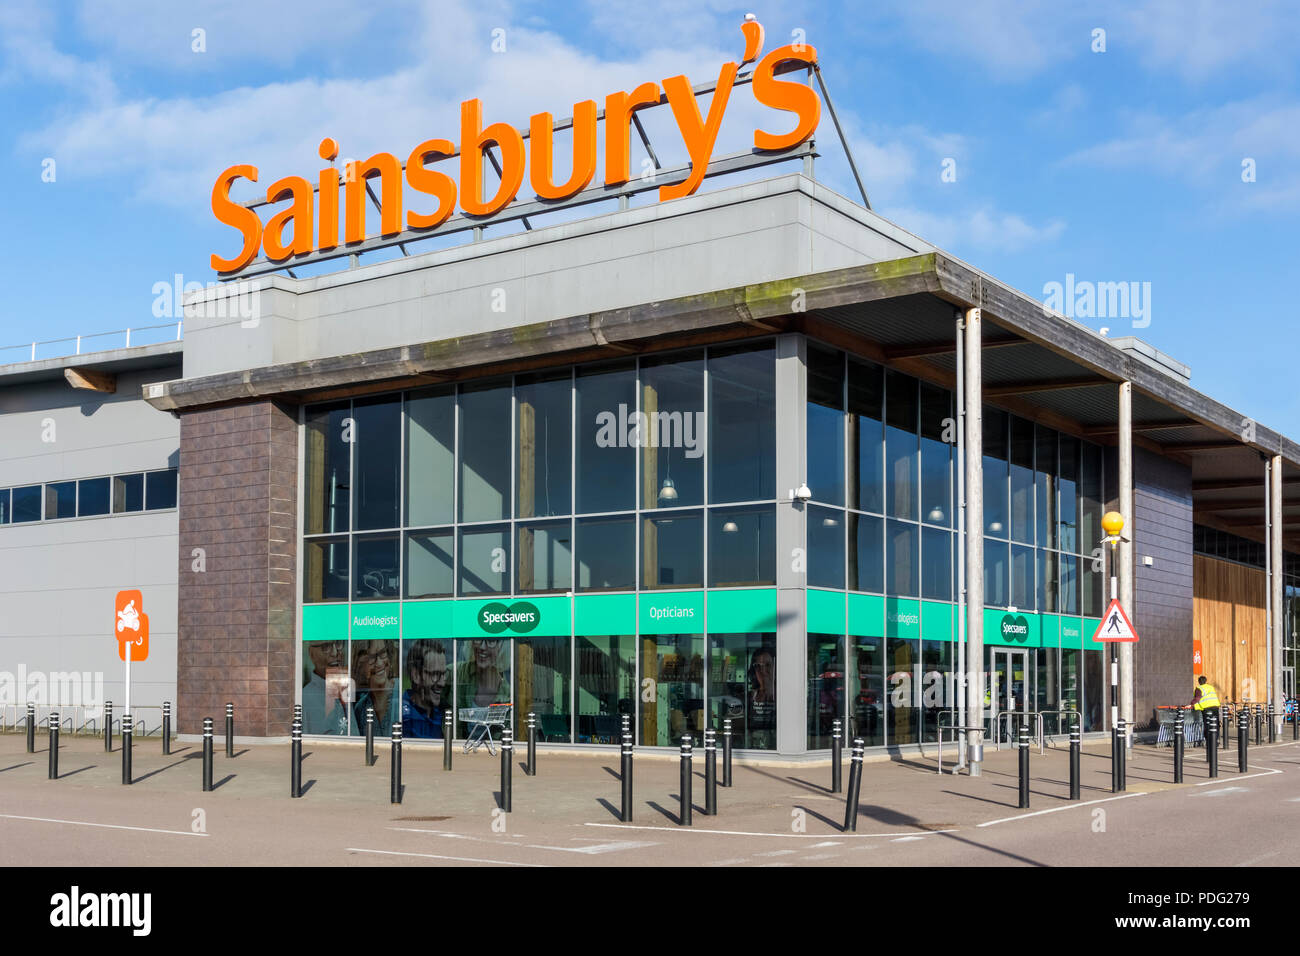 A branch of Sainsbury's containing a Specsavers opticions in King's Lynn, Norfolk. Stock Photo